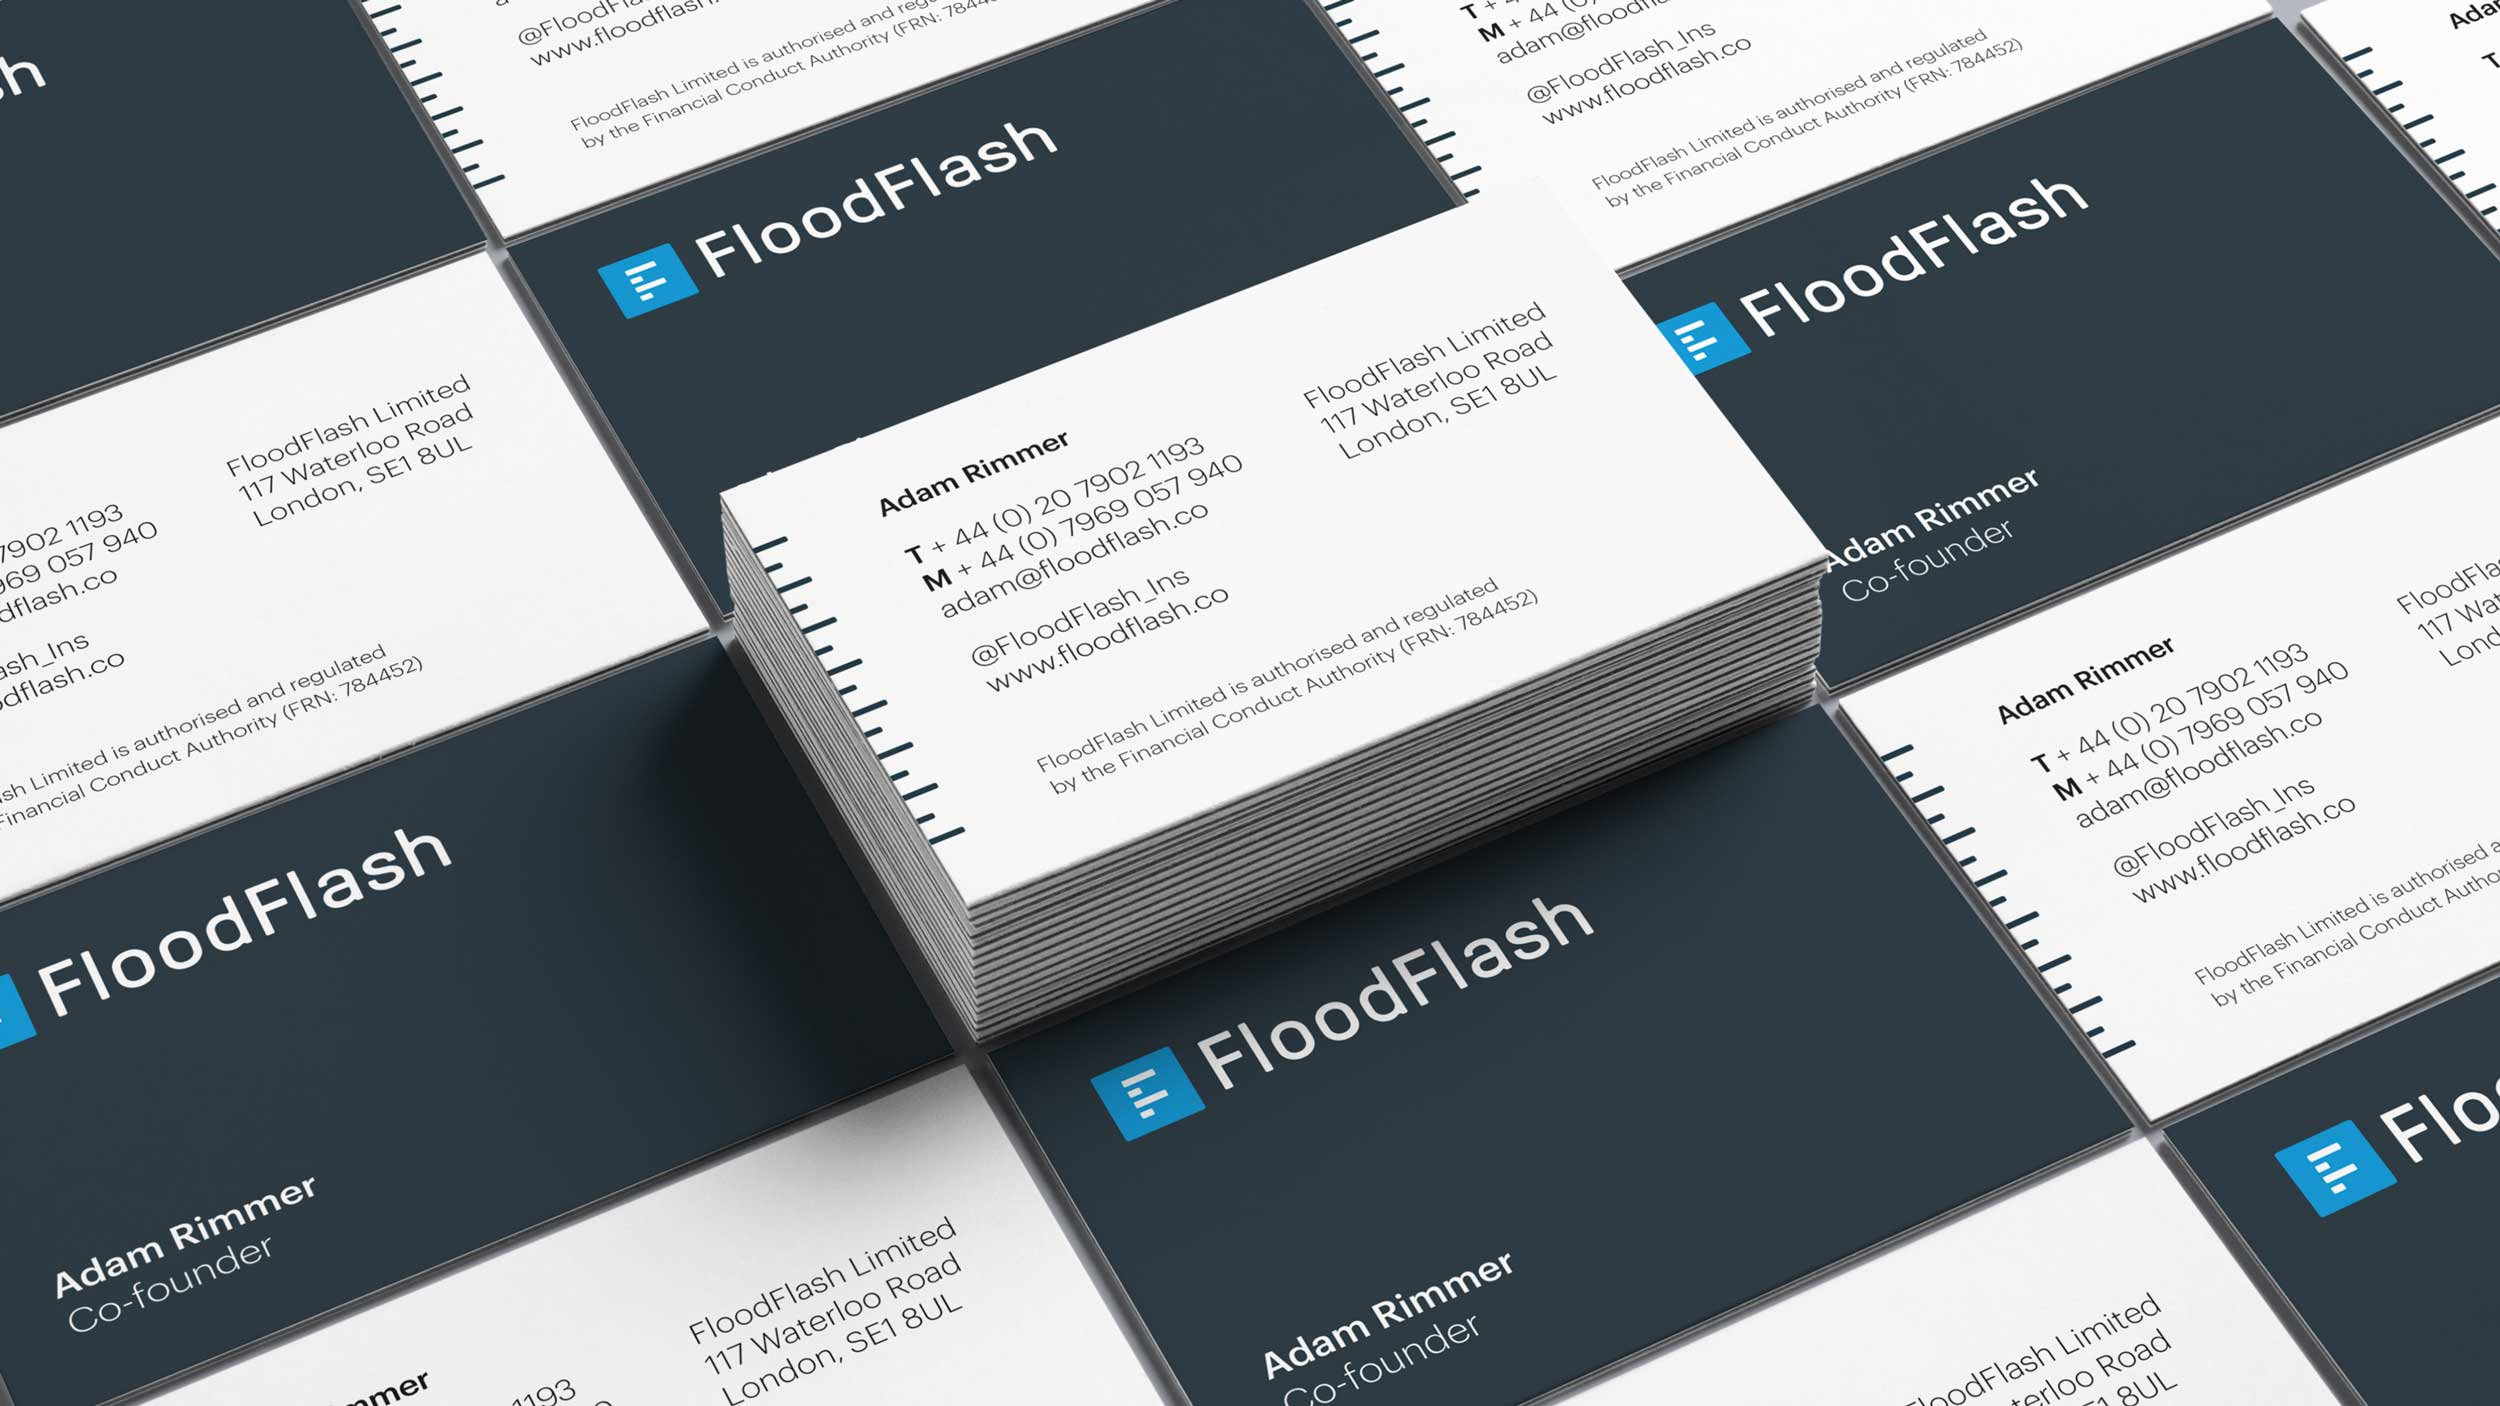 Top view of Floodflash business cards